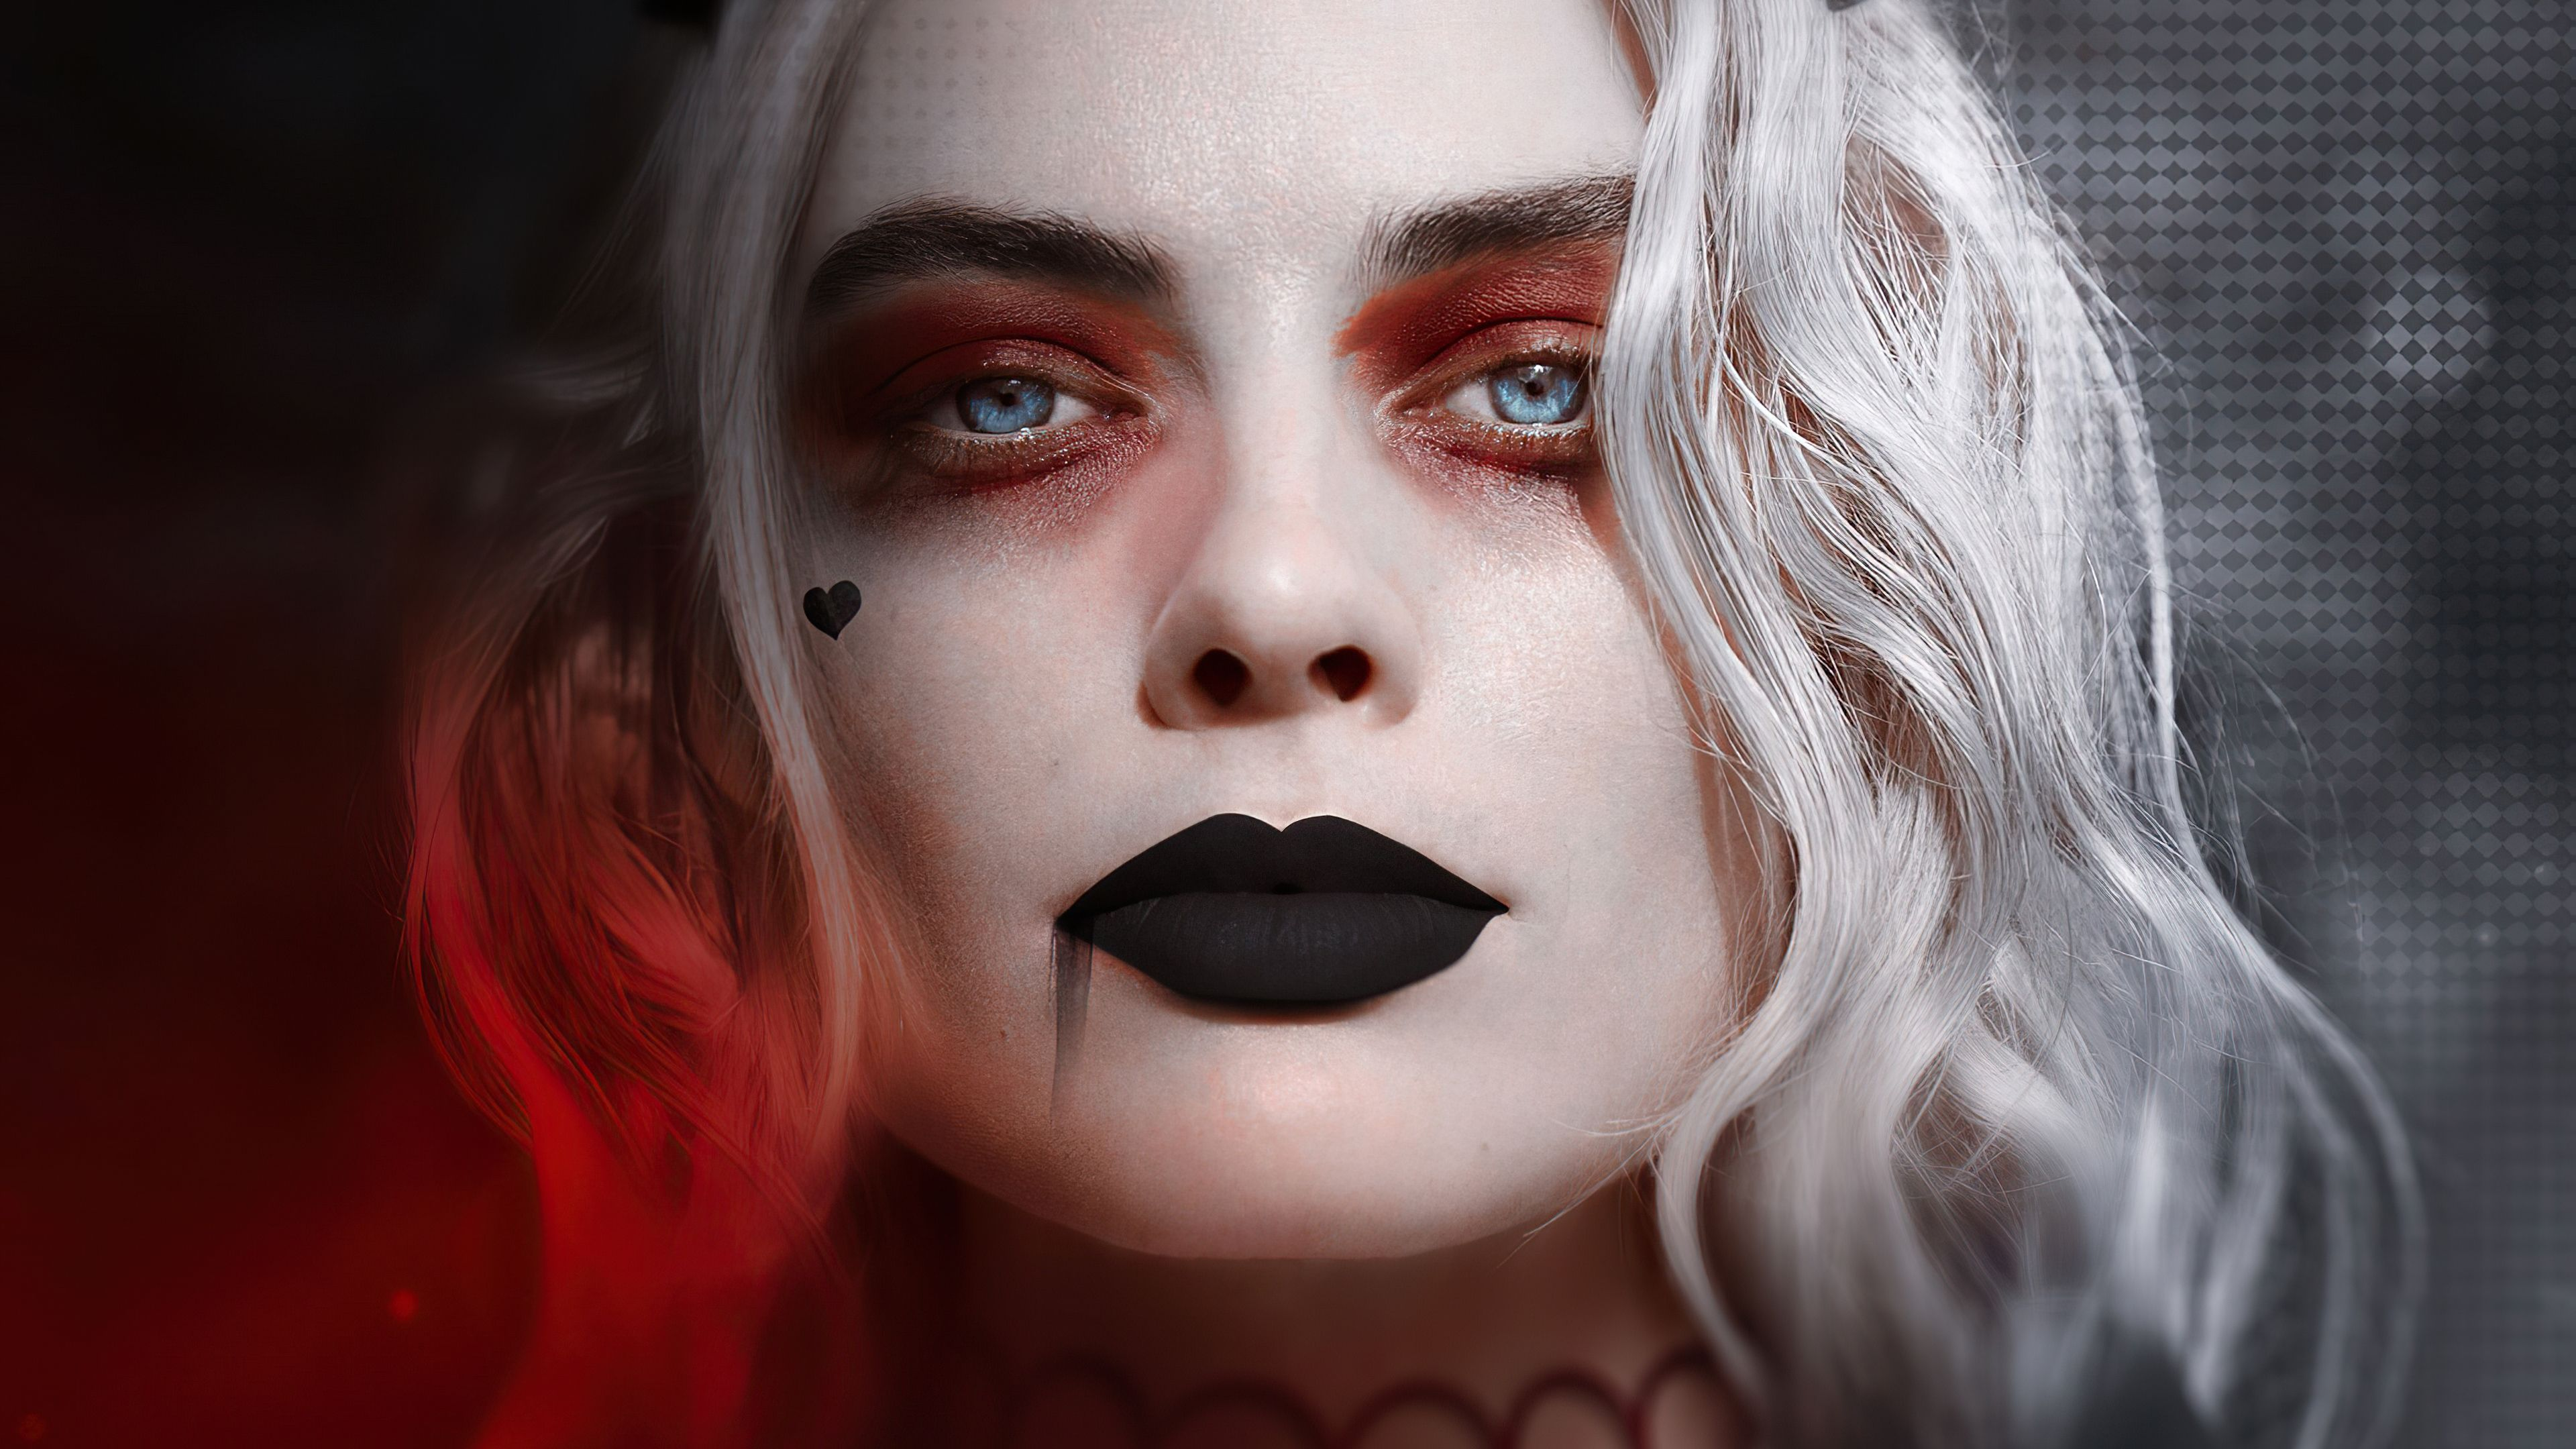 Harley Quinn The Suicide Squad 2021 Movie, HD Movies, 4k Wallpapers, Image, Backgrounds, Photos and Pictures